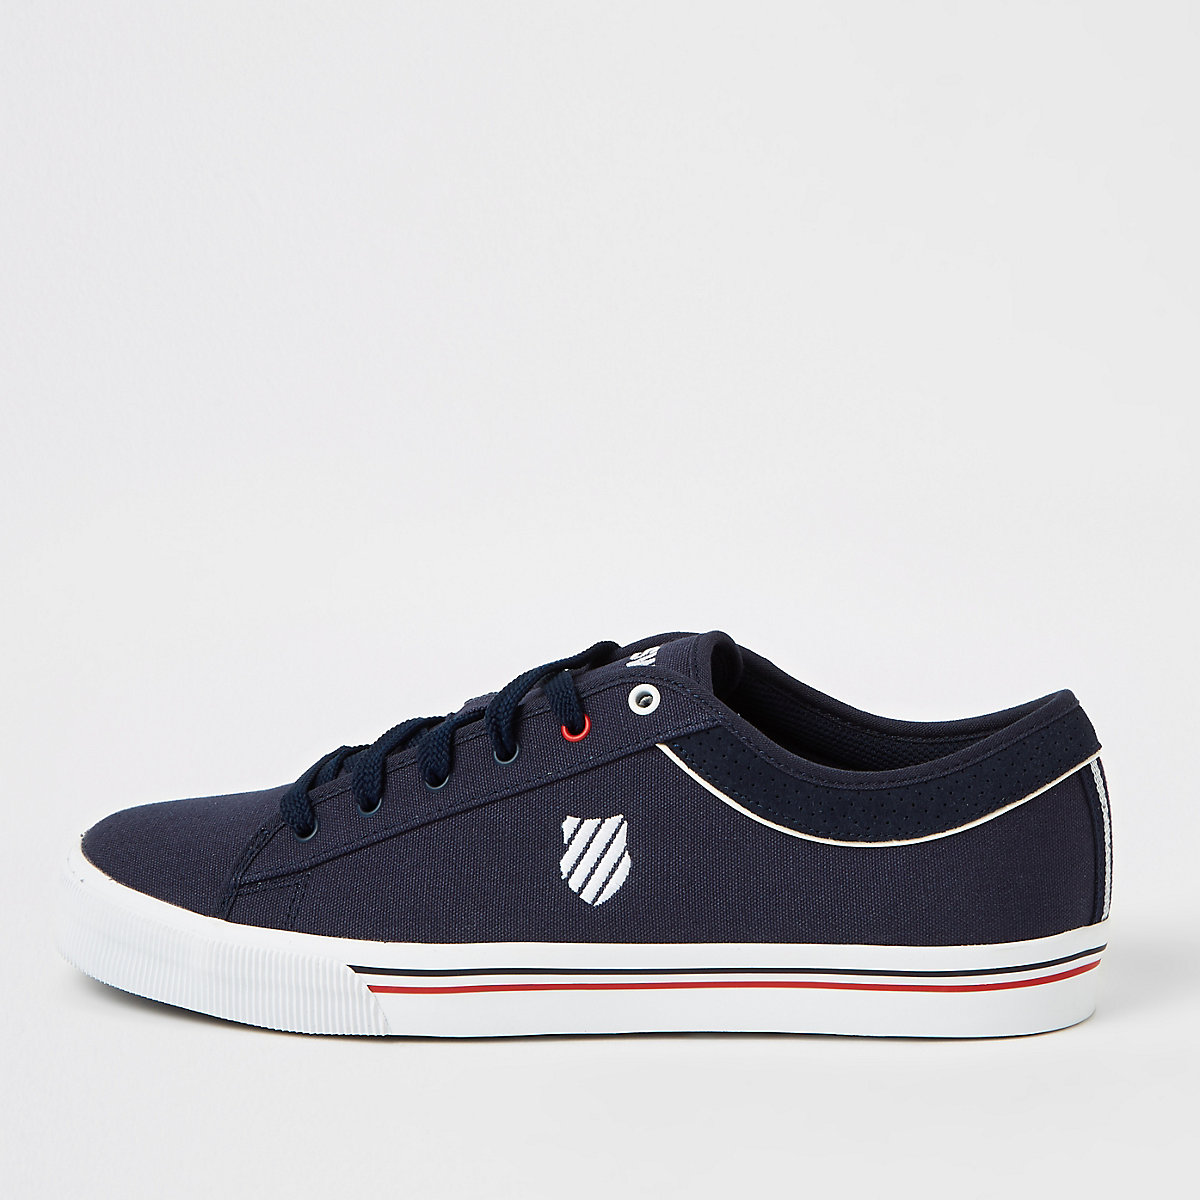 K-Swiss navy lace-up trainers